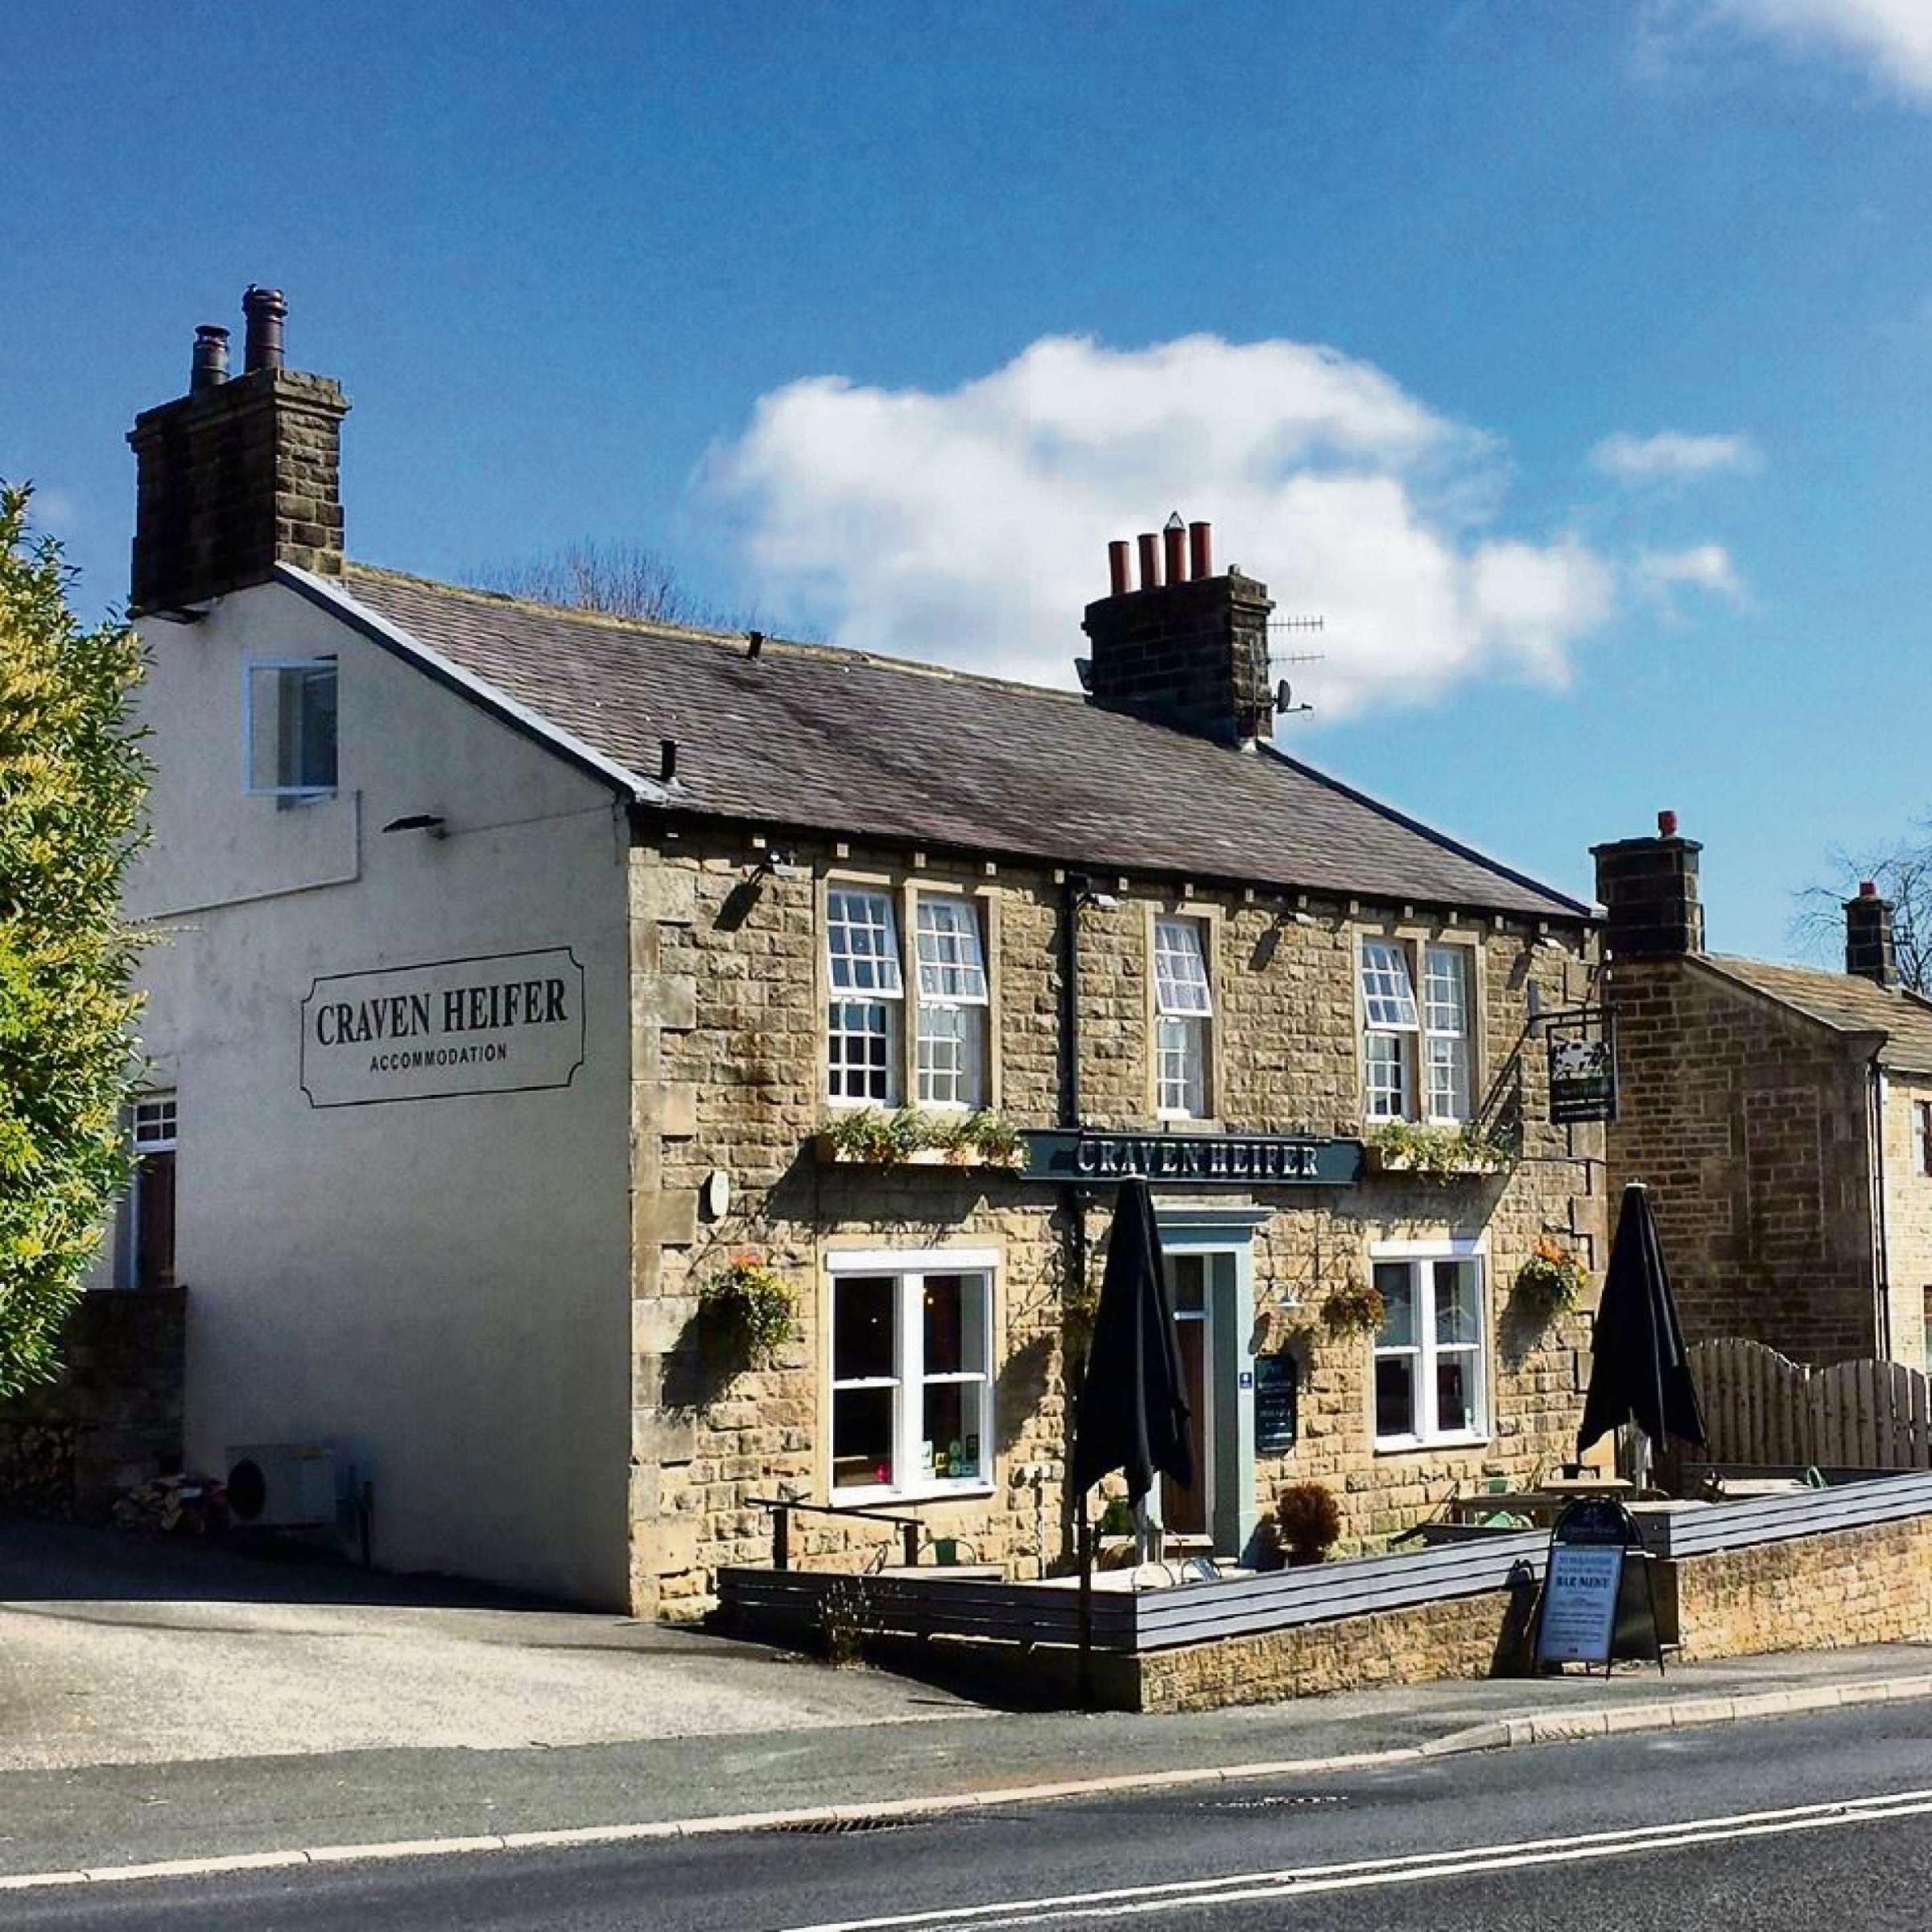 The Craven Heifer, Main Street, Addingham, Ilkley, LS29 0PL